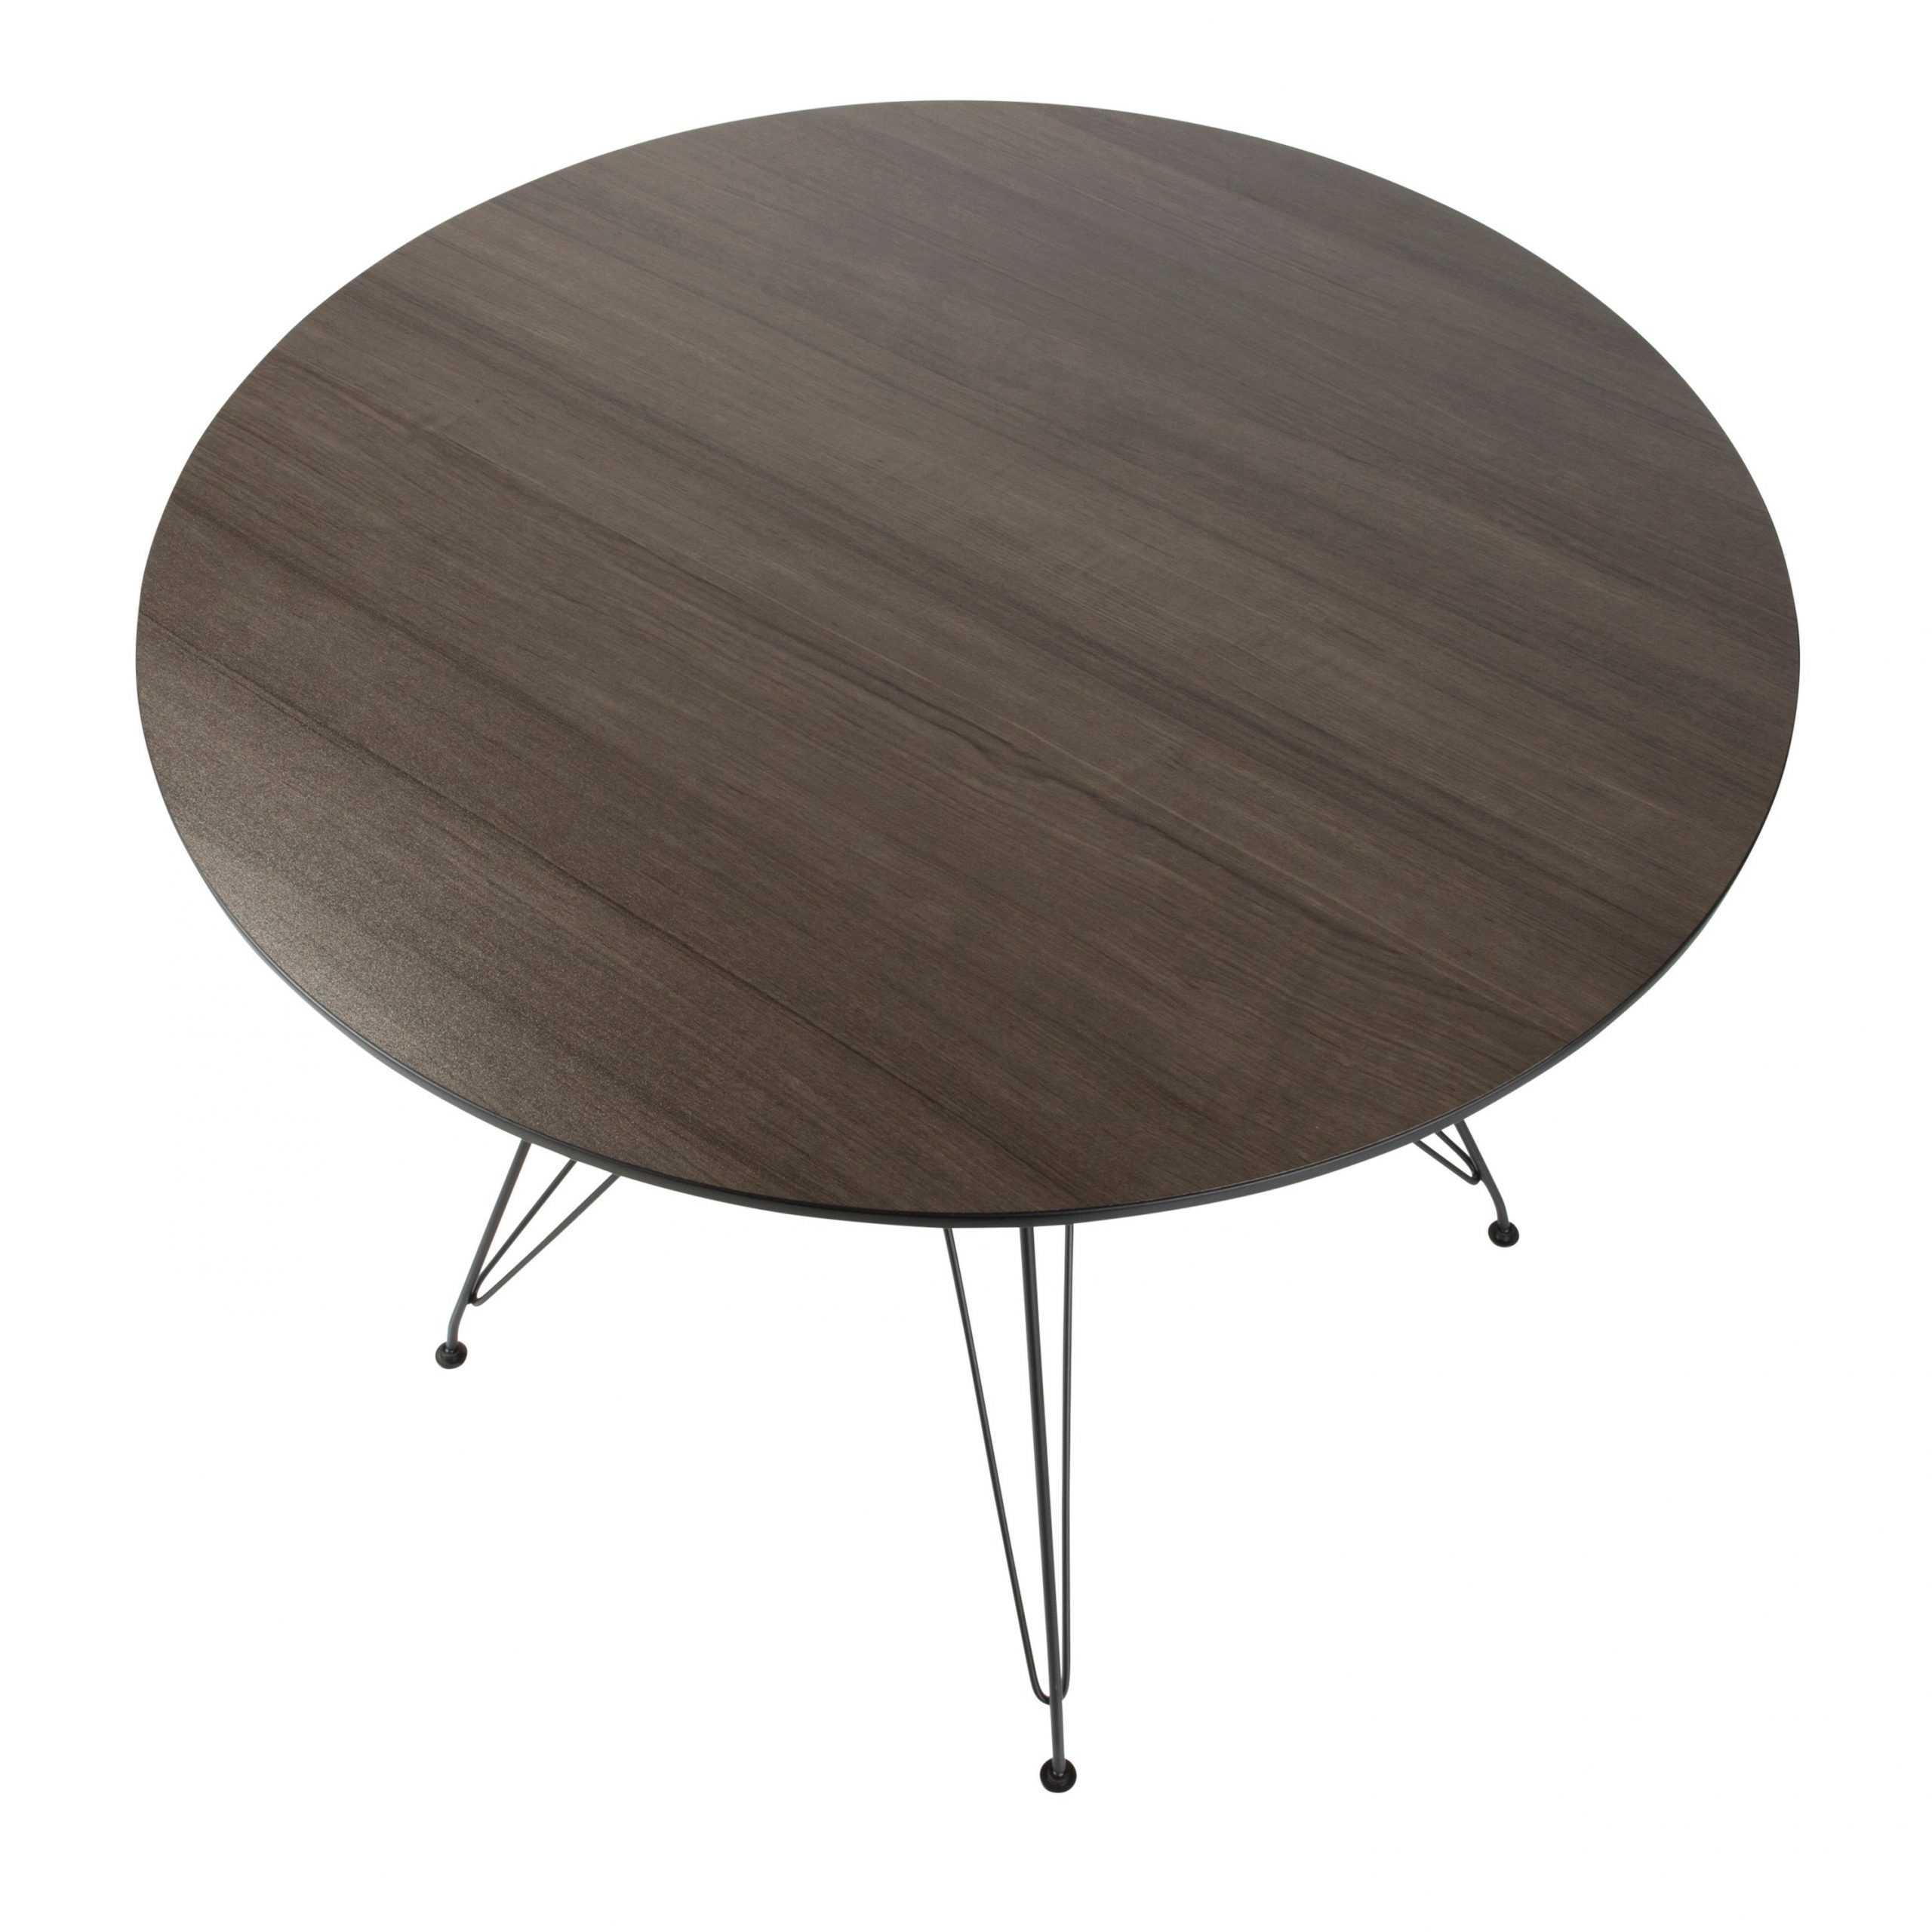 Avery Round Dining Table In Black And Walnut Regarding 2020 Avery Round Dining Tables (View 6 of 25)